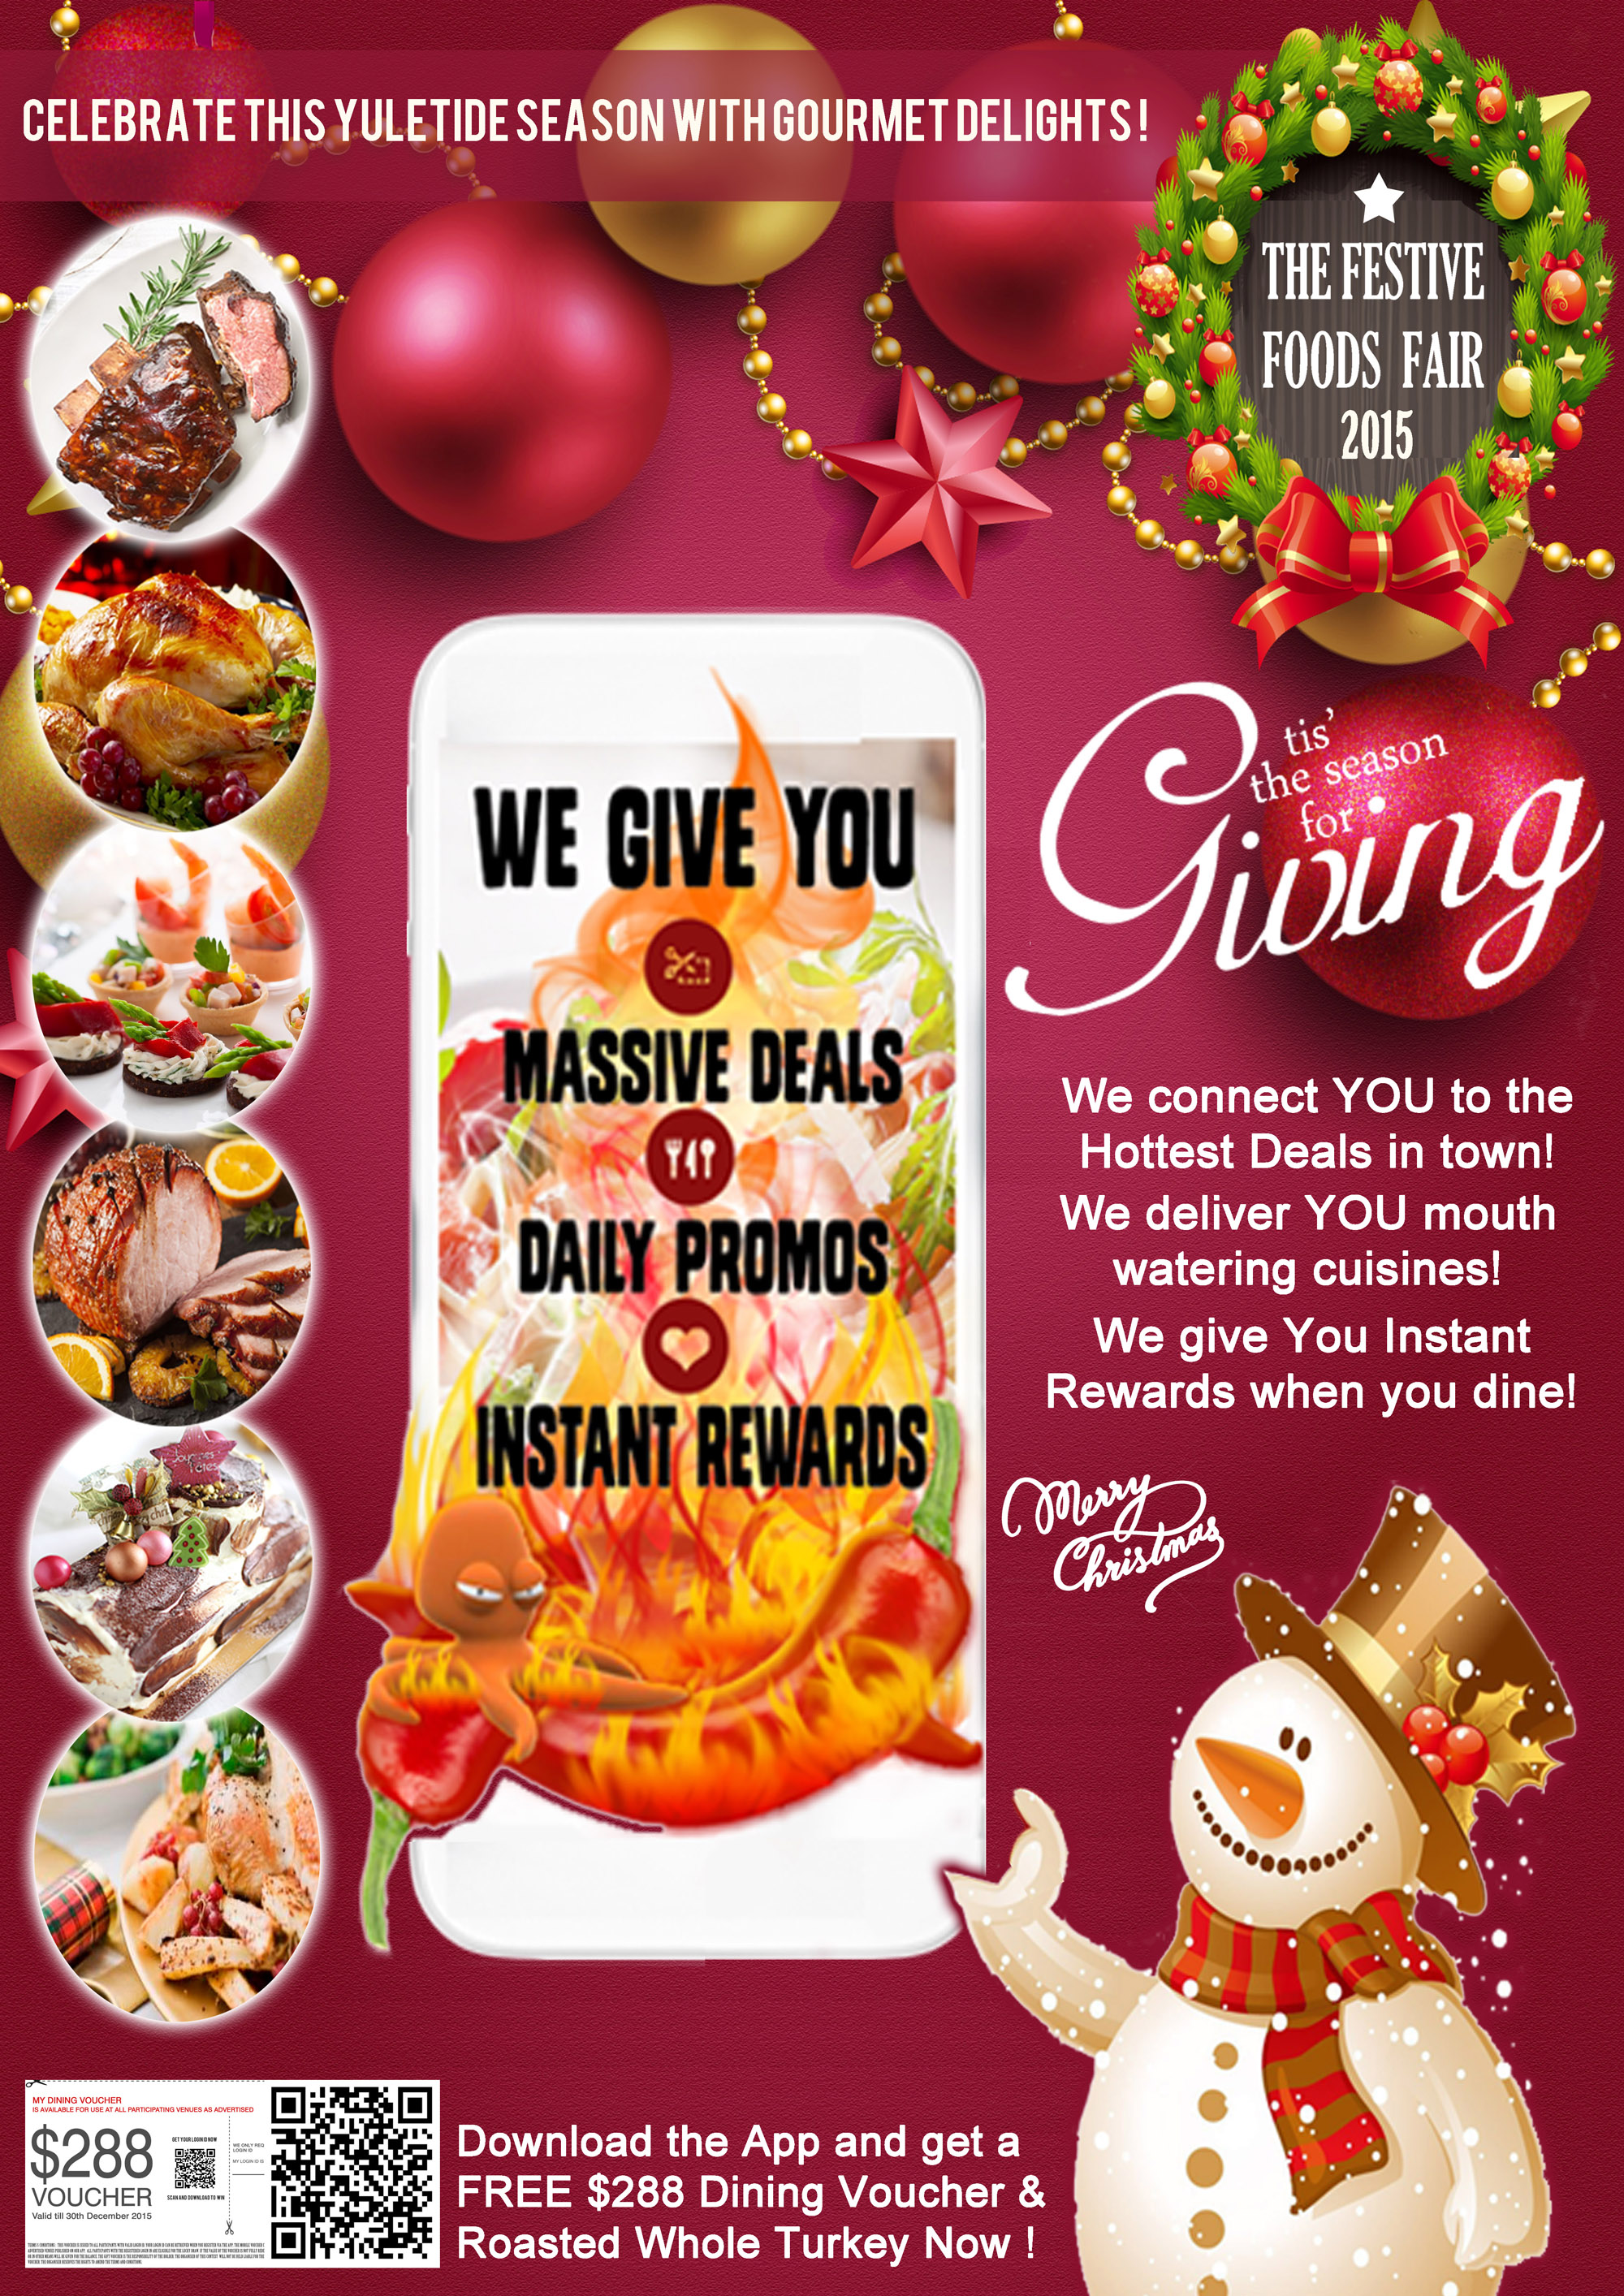 Christmas Festive Foods Fair with Free $288 Food Vouchers ...